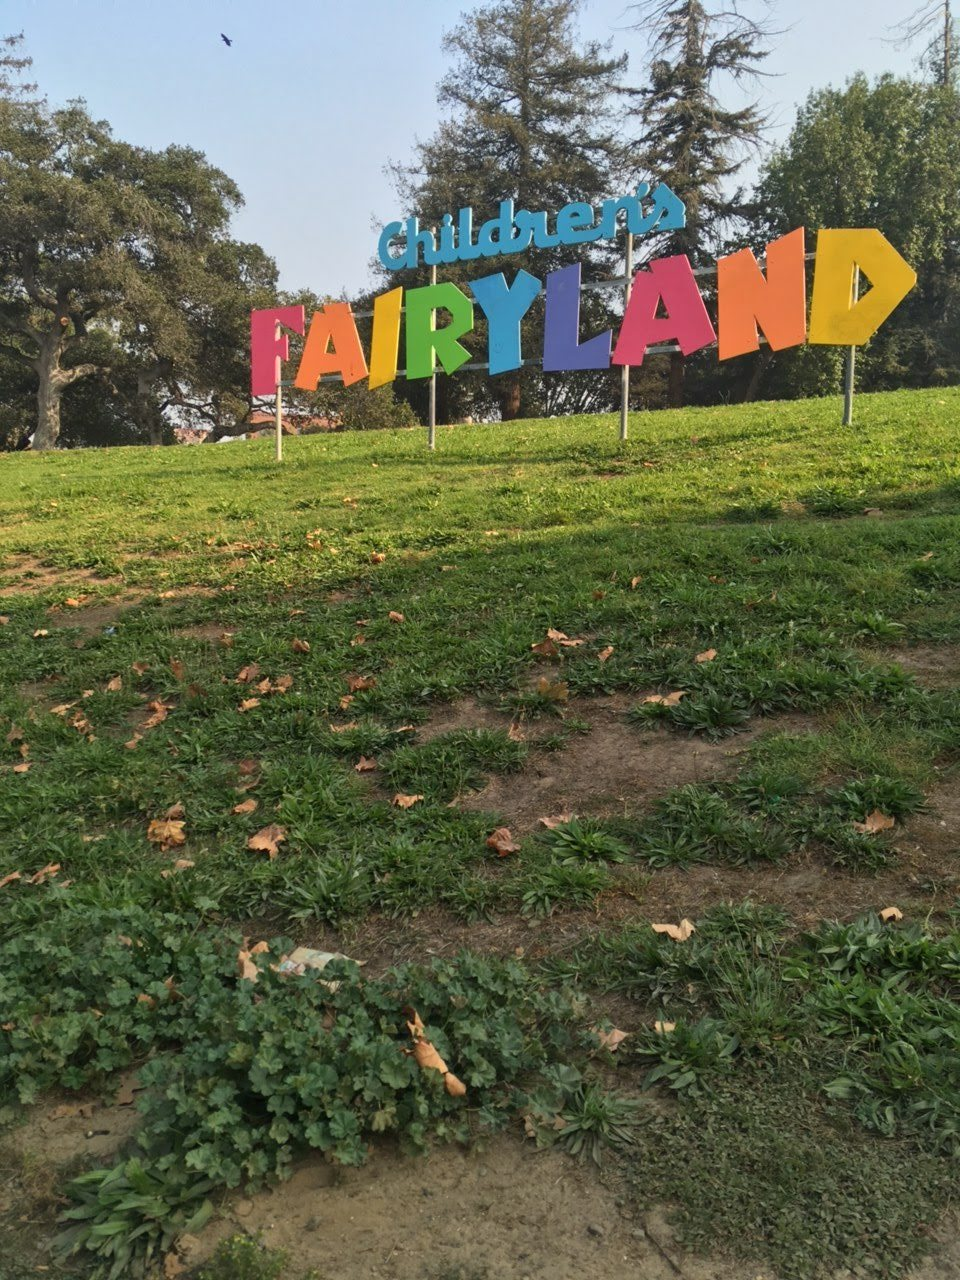 i cant believe that fairy land was next to lake merritt